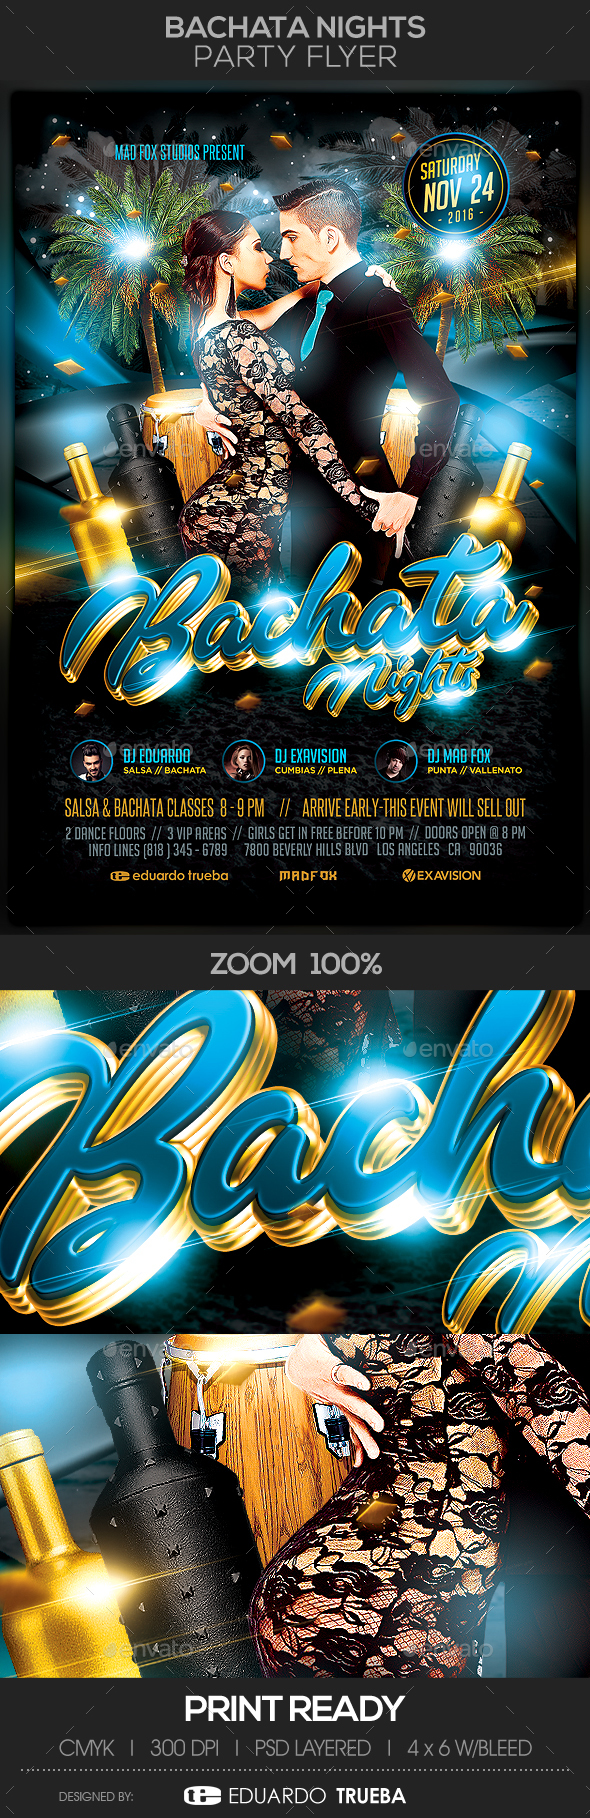 Bachata Nights Party Flyer - Flyers Print Templates